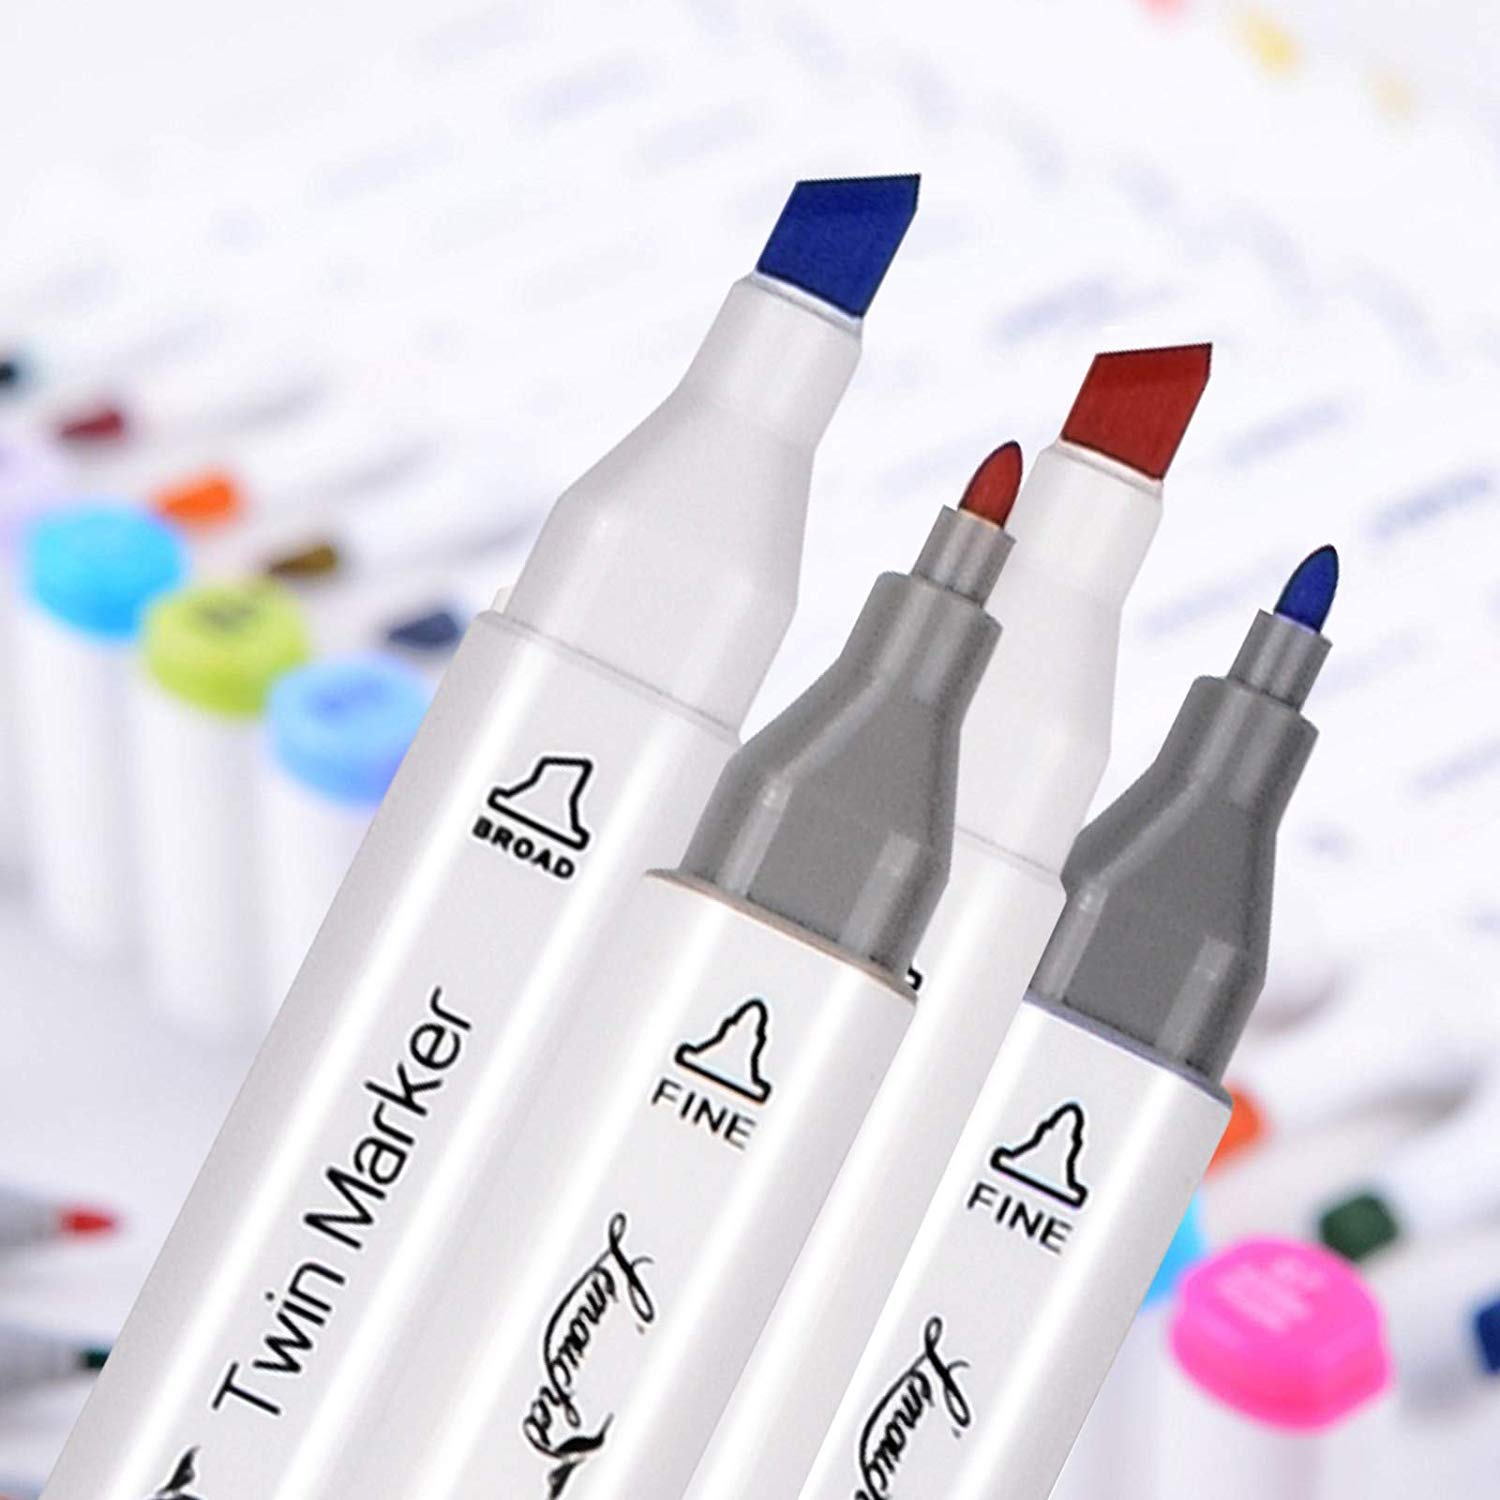 L\'émouchet Twin Marker Pens 168+2 Colors Dual Tips Art Animation Blender Pens with Carrying Case for Sketch Coloring Painting Highlighting Underlining Render Manga and Design